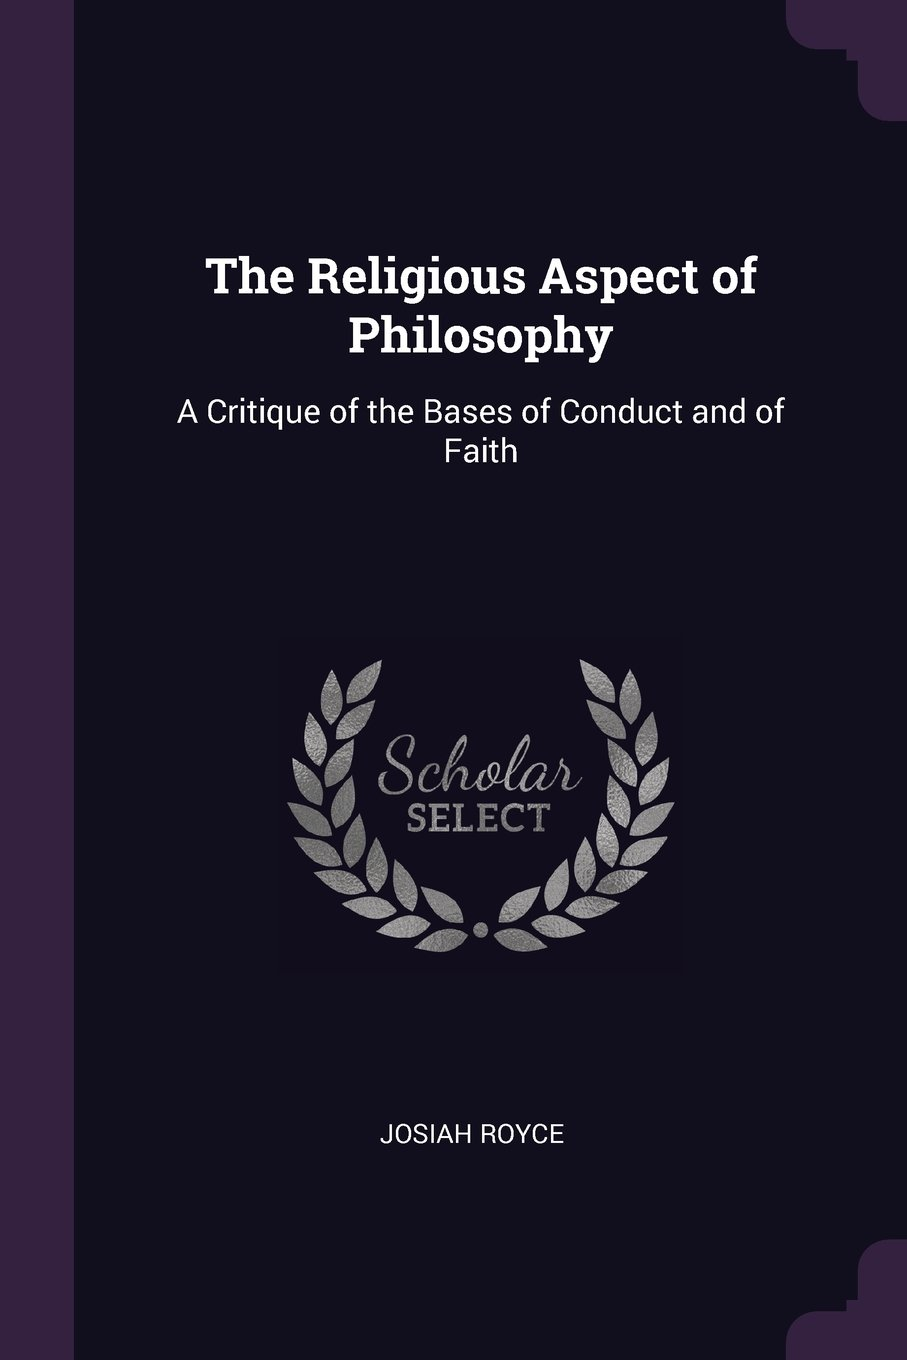 Download The Religious Aspect of Philosophy: A Critique of the Bases of Conduct and of Faith ebook